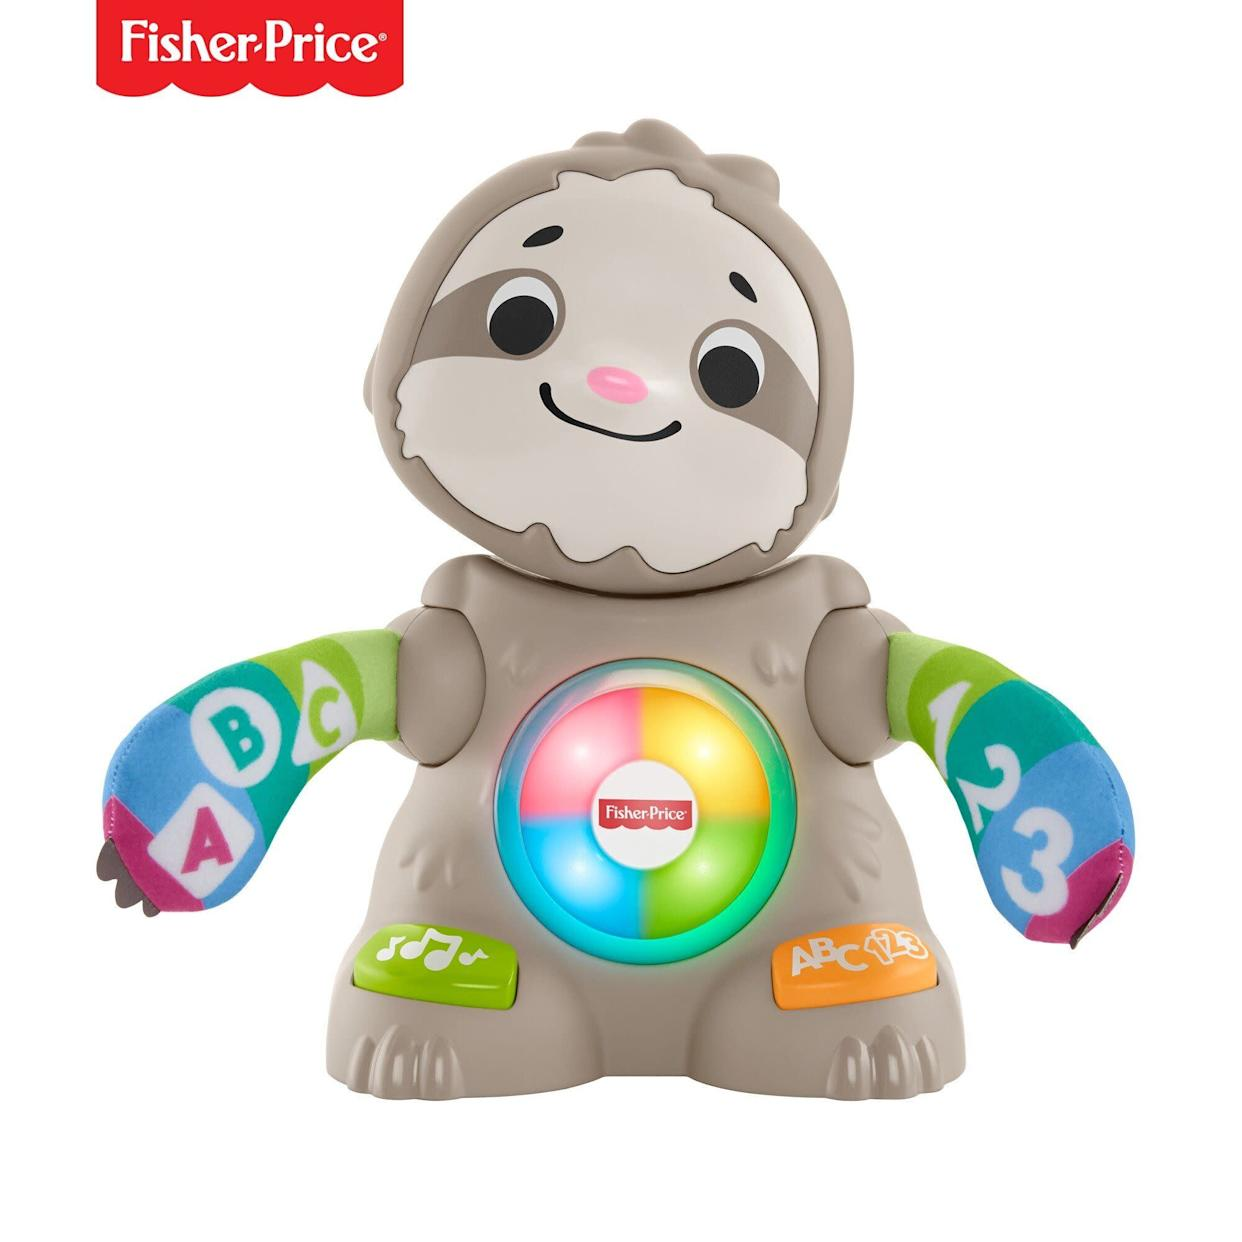 "The Linkimals Smooth Moves Sloth gets your baby moving and learning with exciting lights, music, songs, and groovy dance moves. Press the buttons on the sloth's feet to hear all about numbers, colors and more, as the sloth claps its hands and bobs its head.&nbsp;<strong><a href=""https://fave.co/2PDOnlu"" rel=""nofollow noopener"" target=""_blank"" data-ylk=""slk:Find it for $32 at Walmart"" class=""link rapid-noclick-resp"">Find it for $32 at Walmart</a>.</strong>"